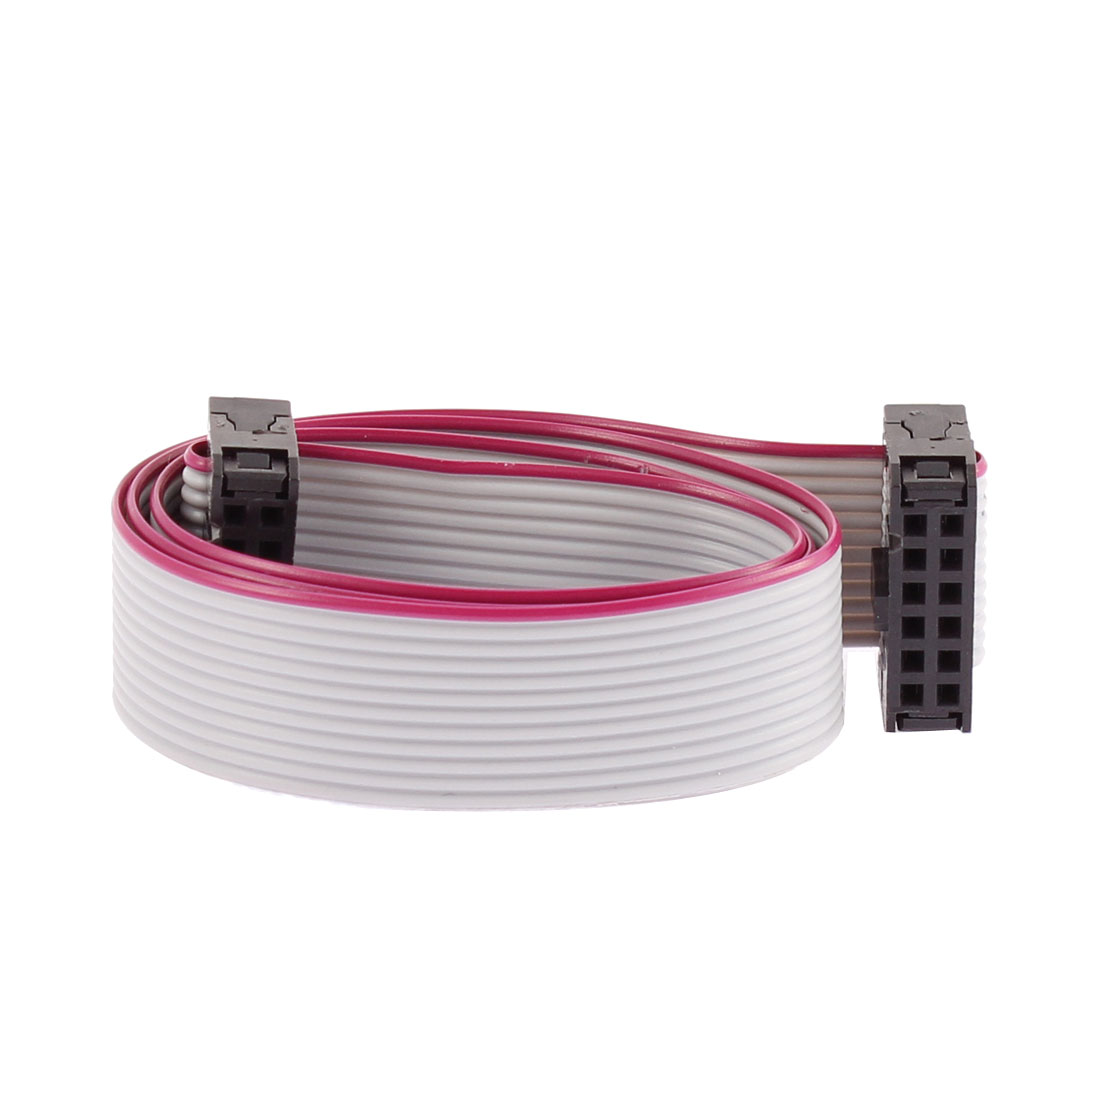 2.54mm Pitch 12 Pins 12 Wires F/F IDC Connector Flat Ribbon Cable 40cm Length